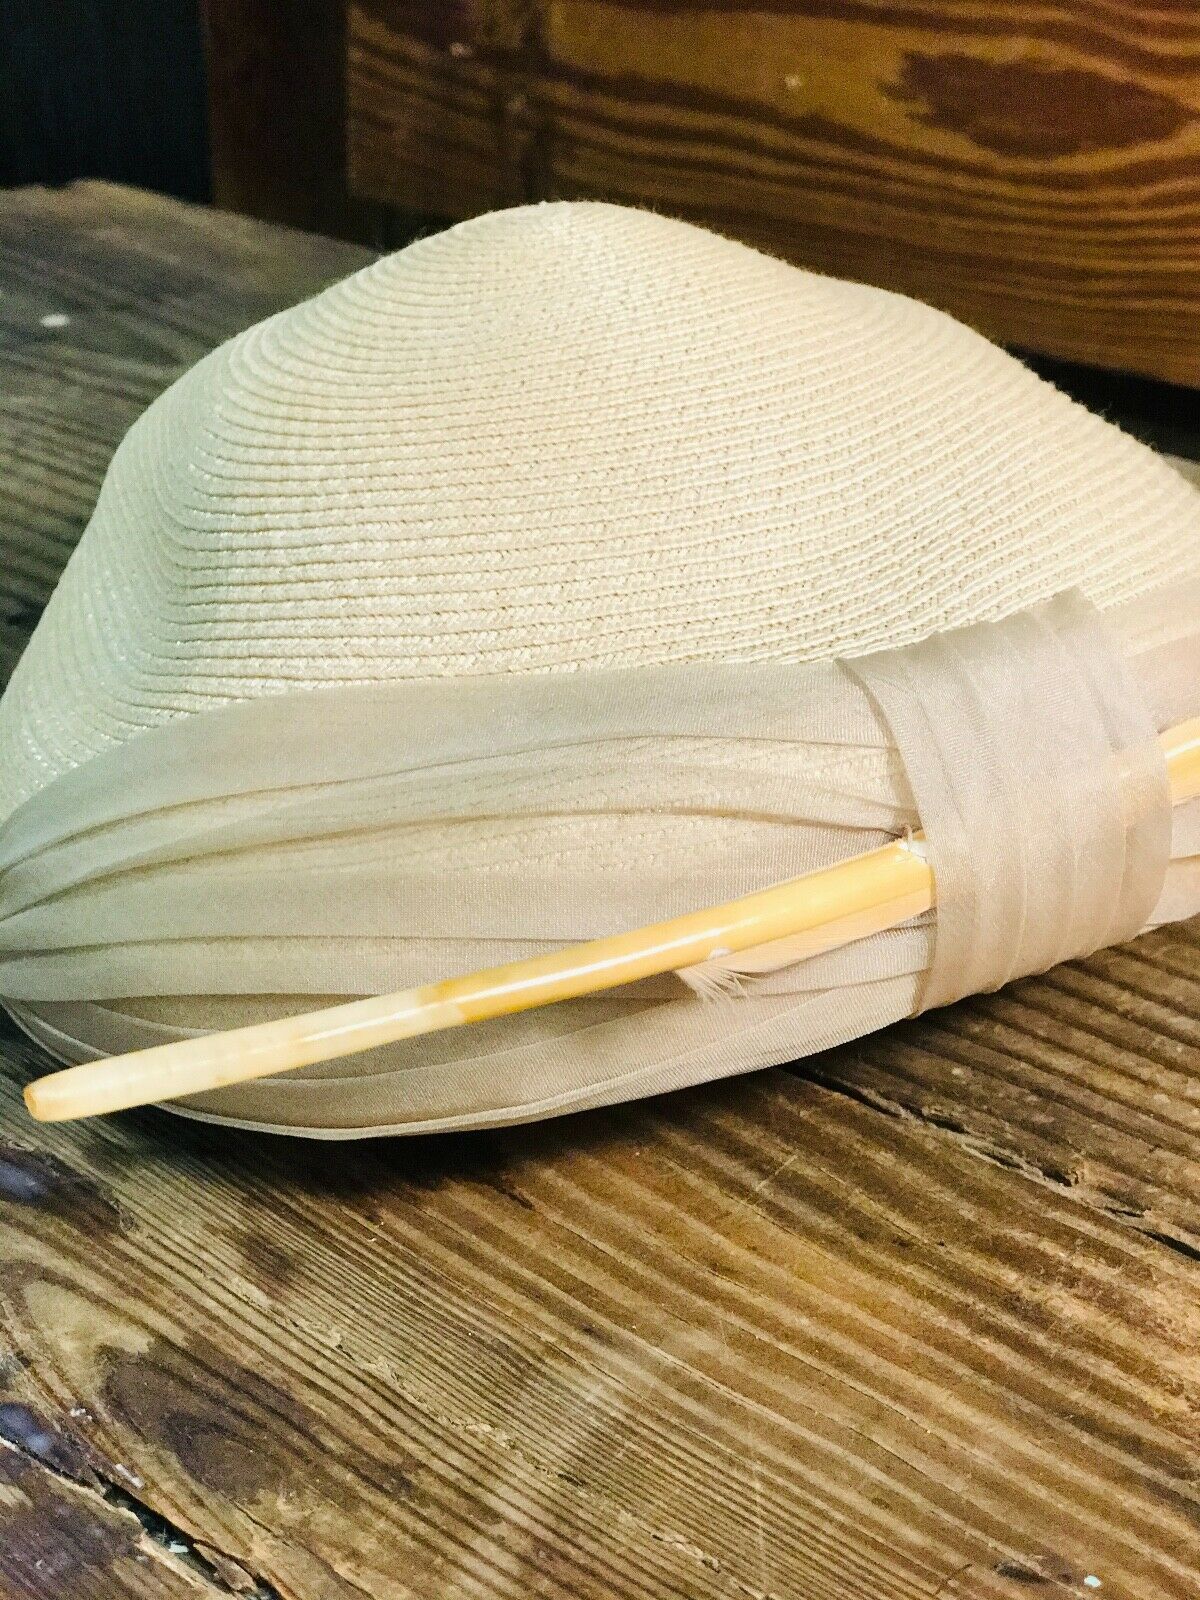 Vintage Womens Woven Wheat Straw Cap - image 3